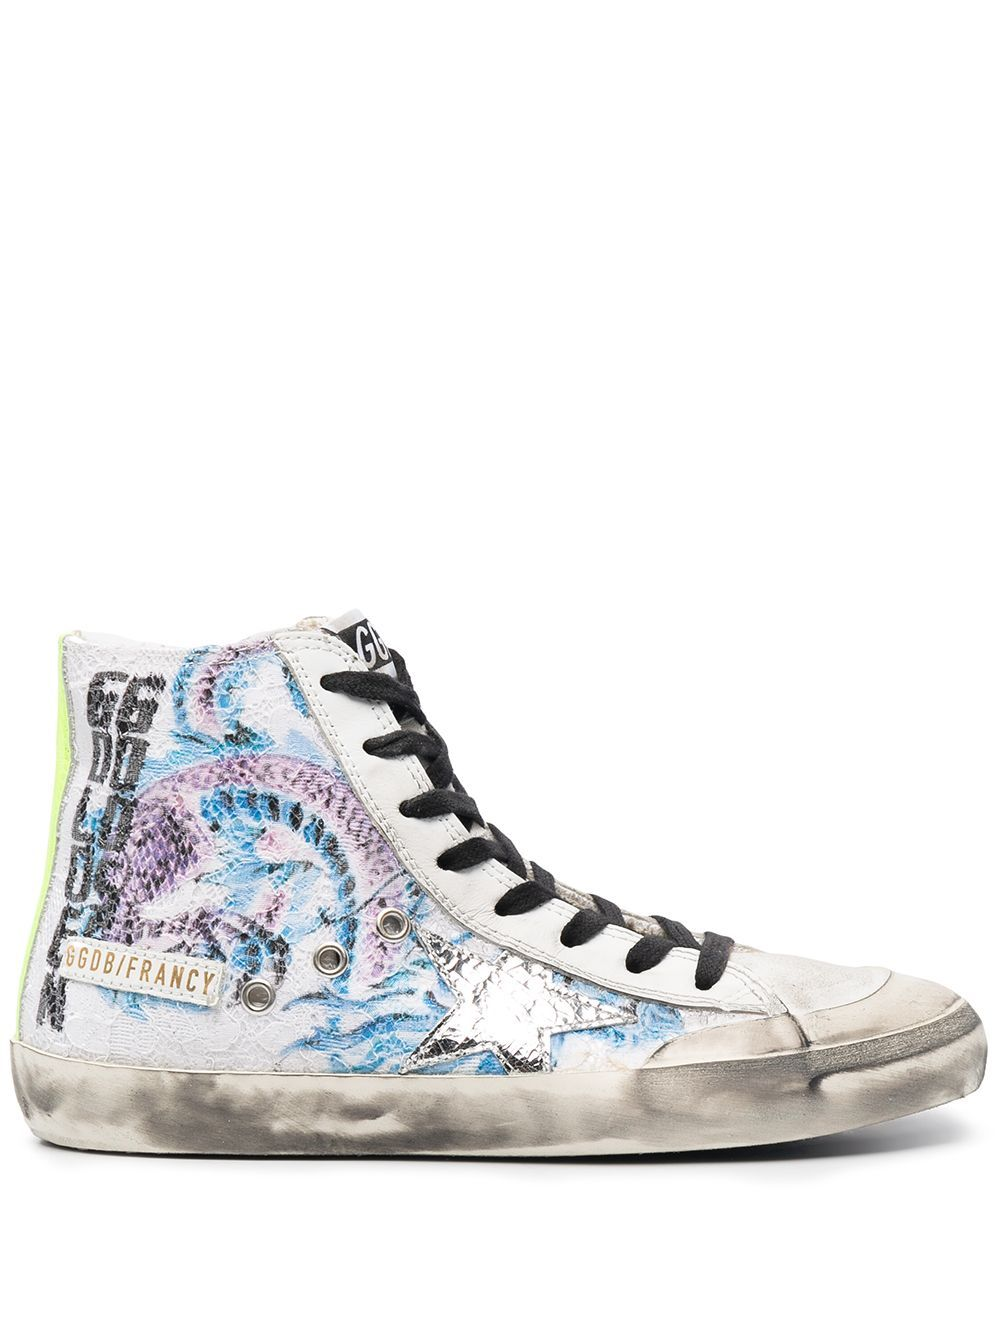 Golden Goose GOLDEN GOOSE WOMEN'S GWF00114F00026880271 WHITE LEATHER HI TOP SNEAKERS